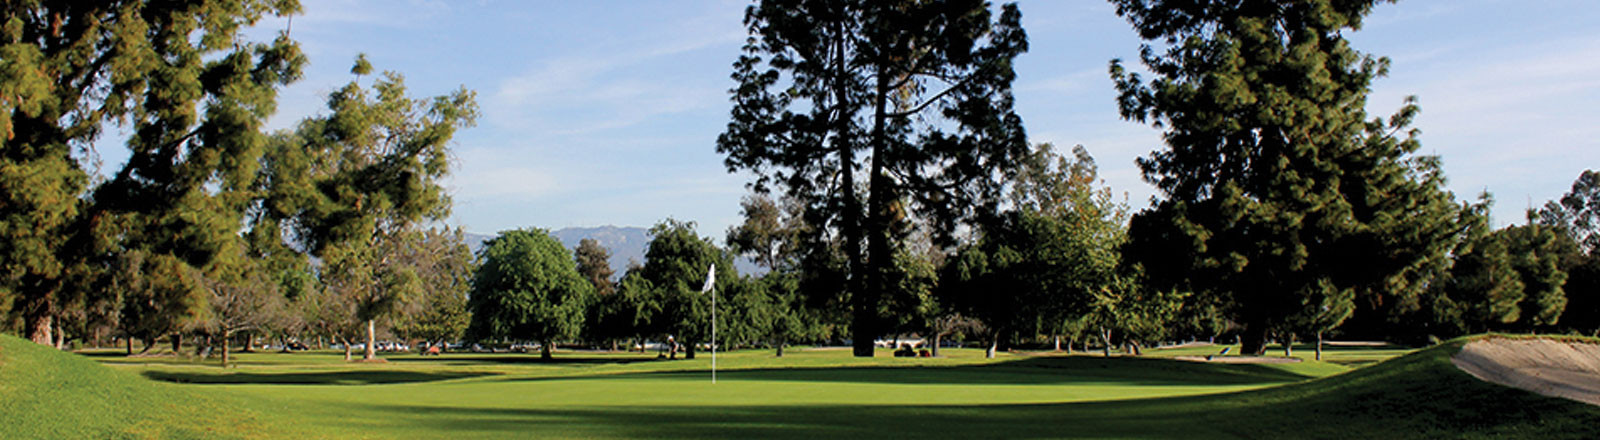 Whittier Narrows Golf Course Header